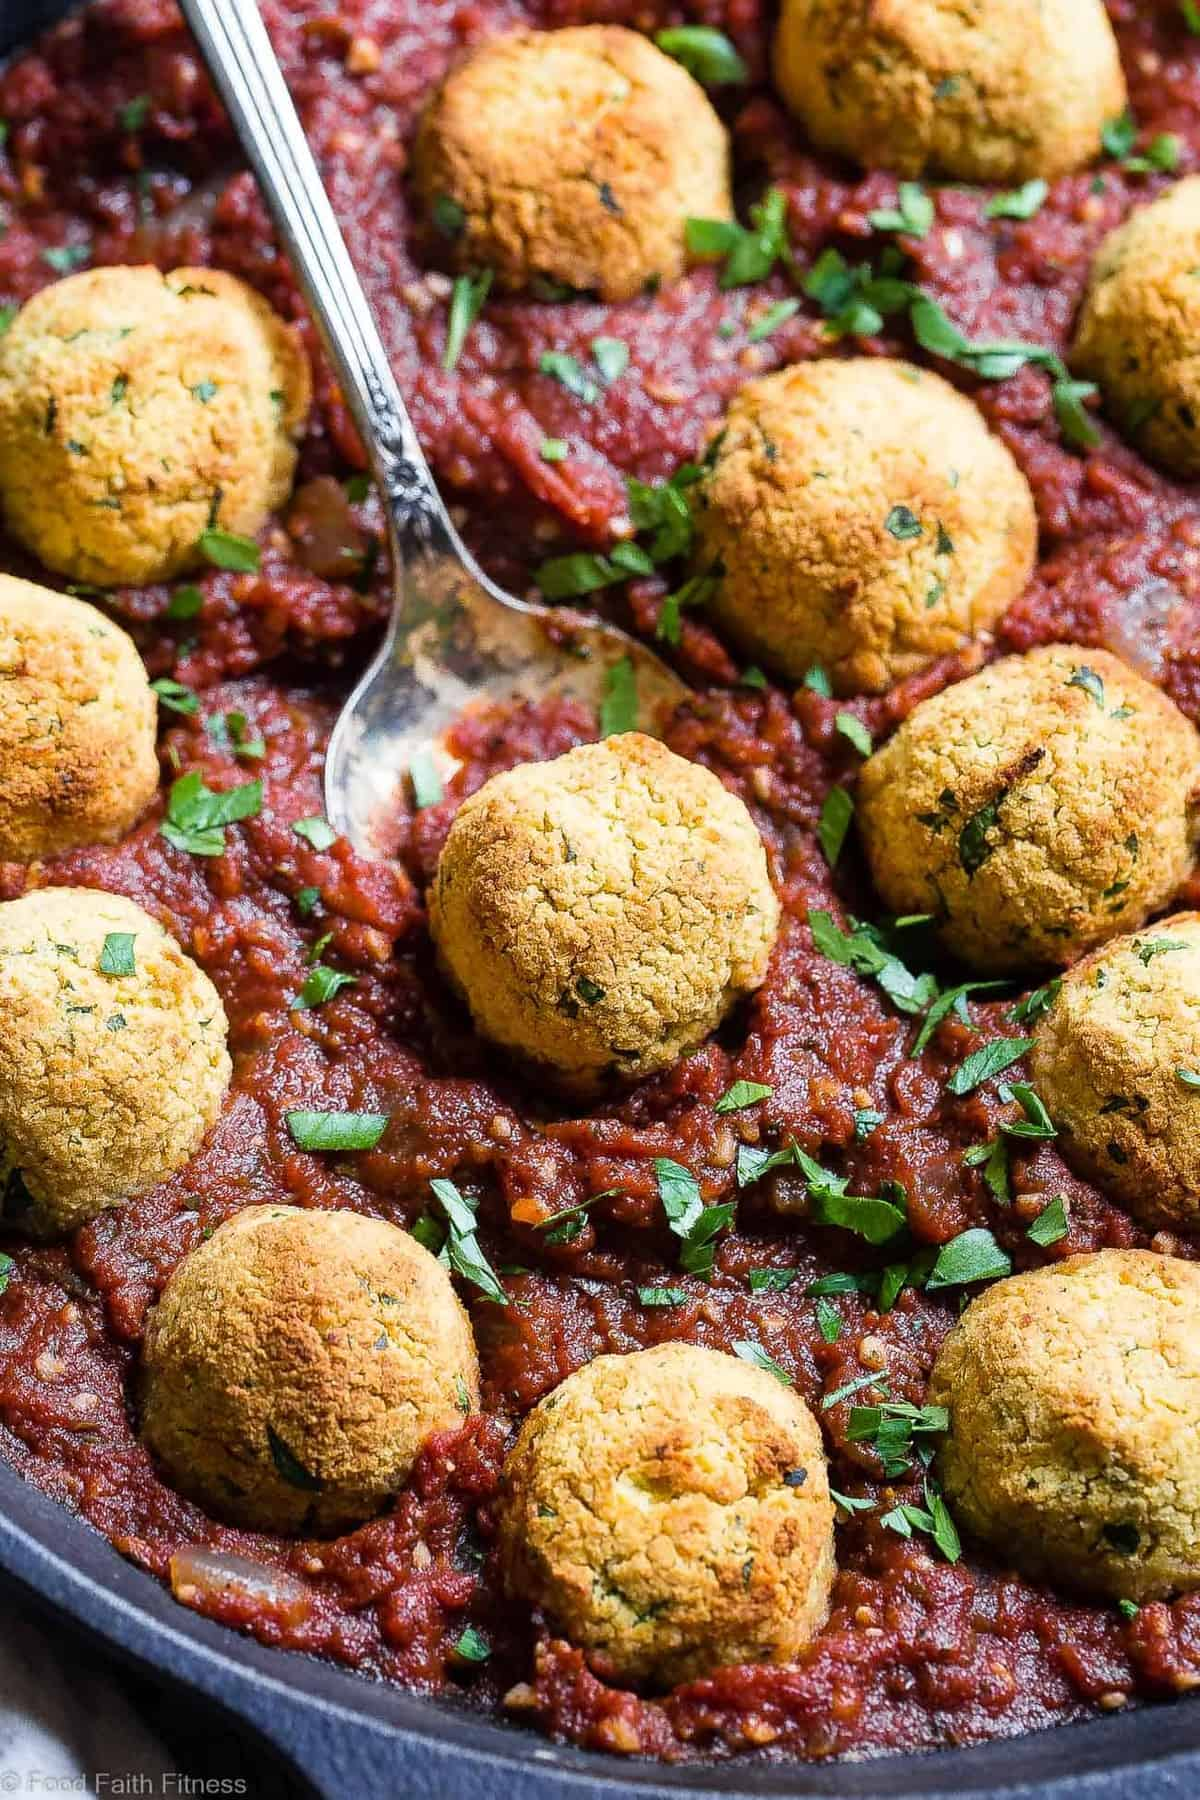 Gluten Free Vegan Chickpea Meatballs with Tomato Sauce - These meatless, gluten free meatballs are SO crispy, they will blow your mind! Serve them with an easy tomato sauce for a tasty, healthy dinner that's packed with plant protein and fiber! | #Foodfaithfitness | #Vegan #Glutenfree #Healthy #Vegetarian #Dairyfree